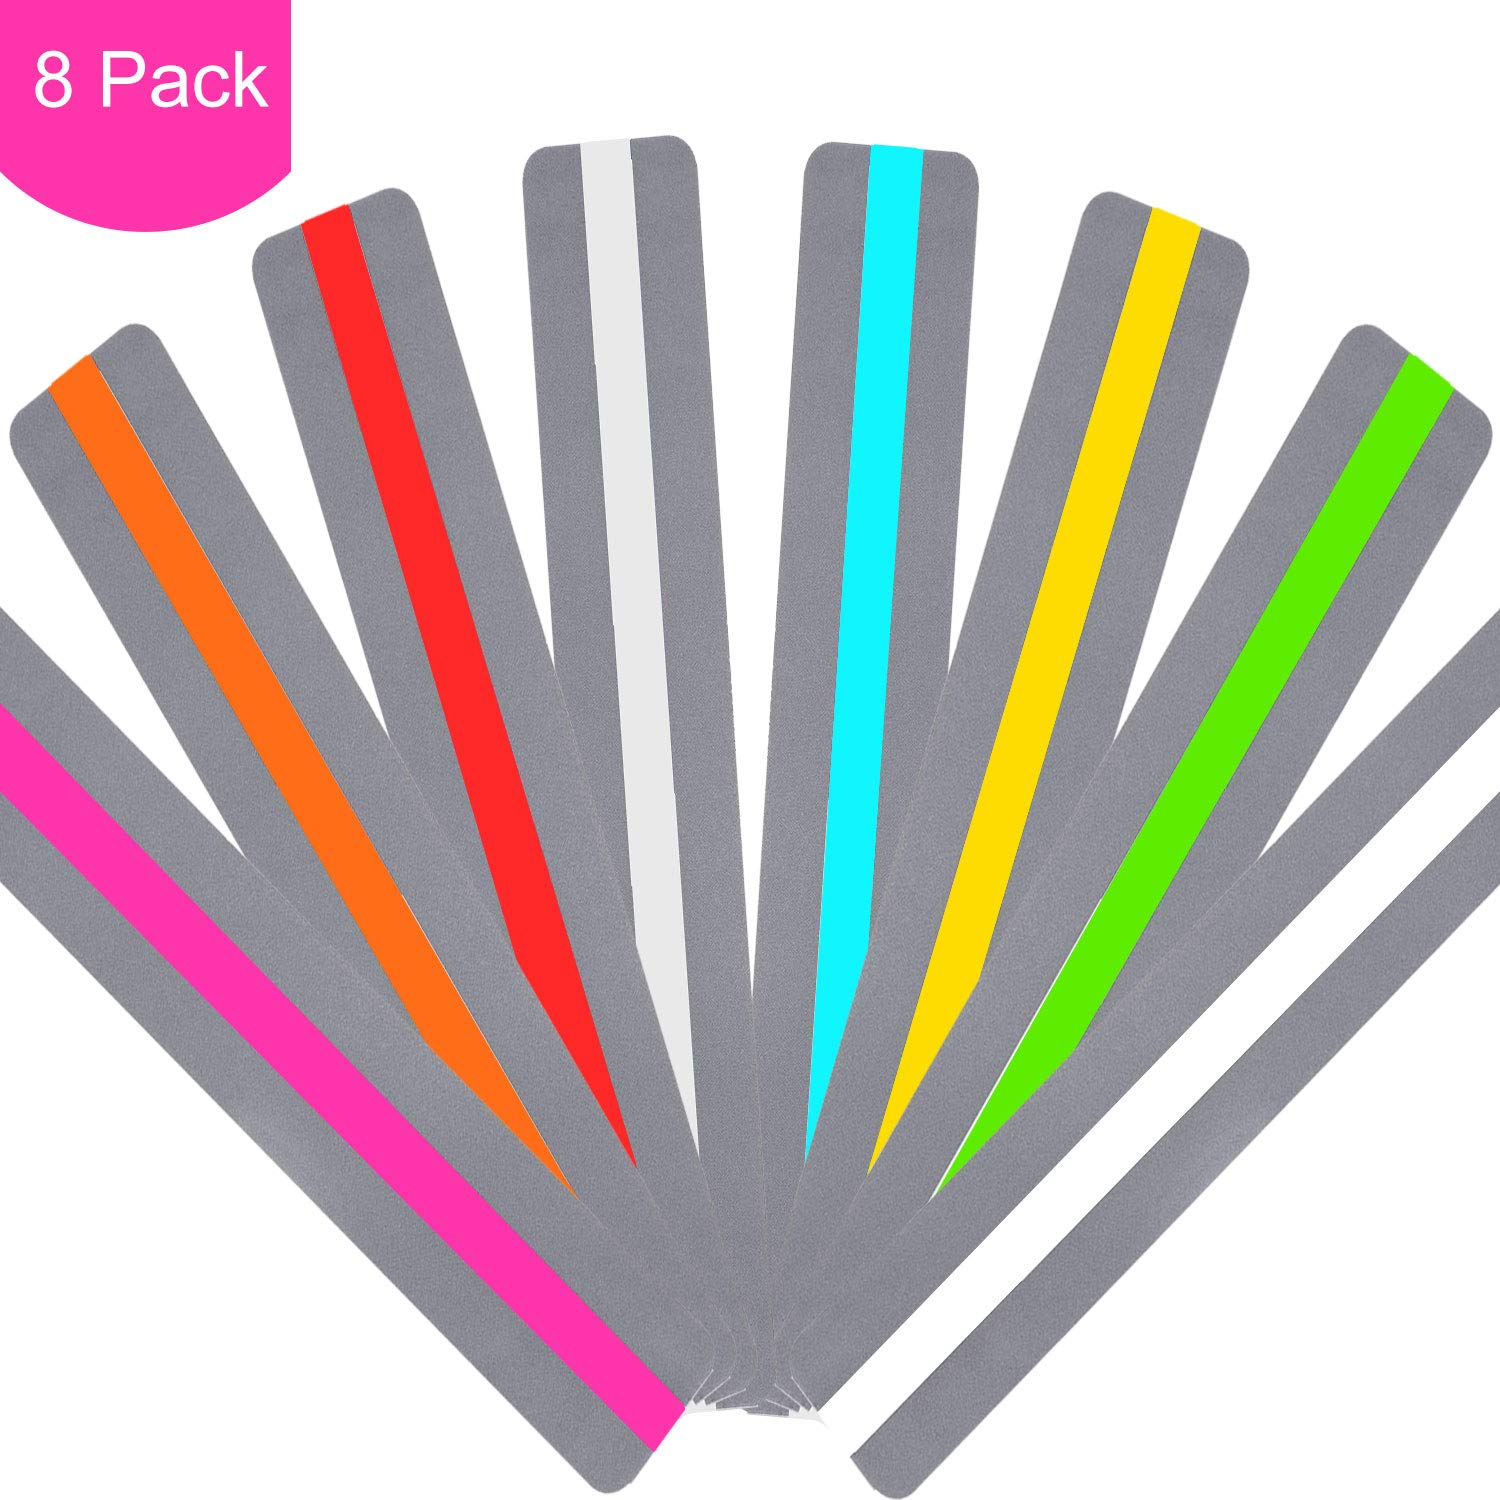 Dyslexia Reading Strips with Coloured Overlays,Reading Tracking Tools for Dyslexia Irlens ADHD and Visual Stress